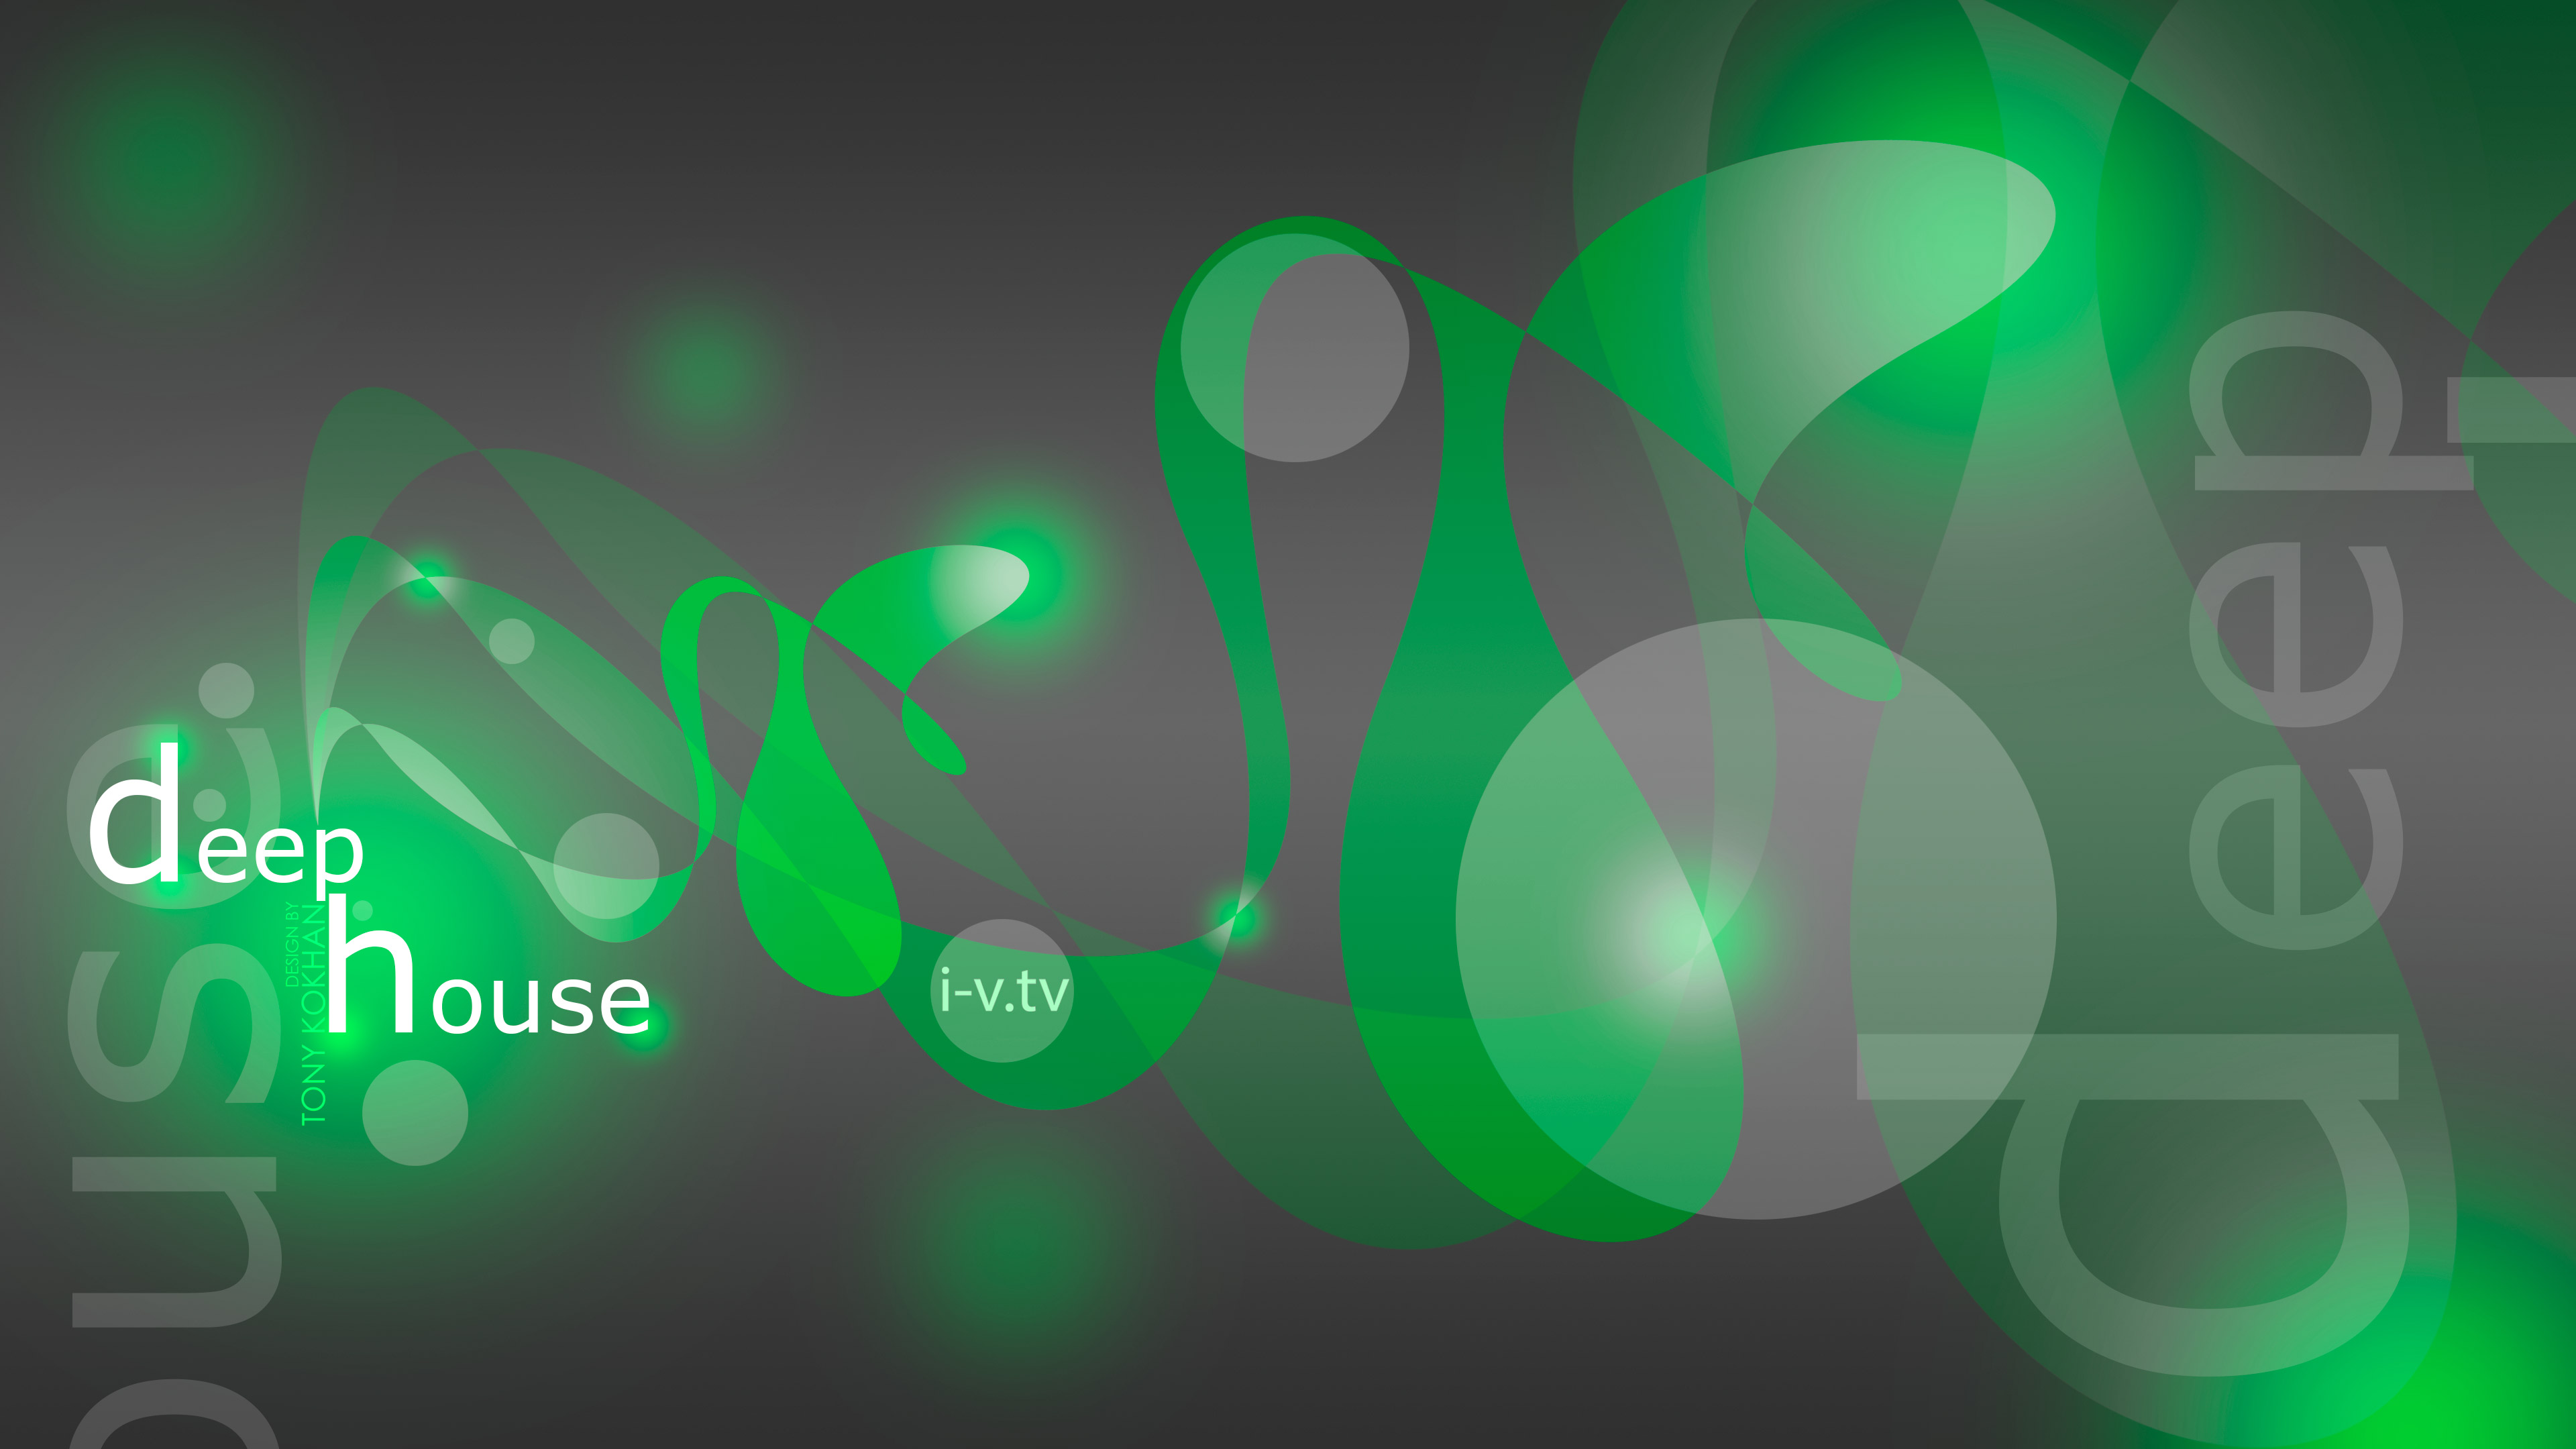 Deep House Music eQ Abstract Image Sound Plastic Style 3840x2160